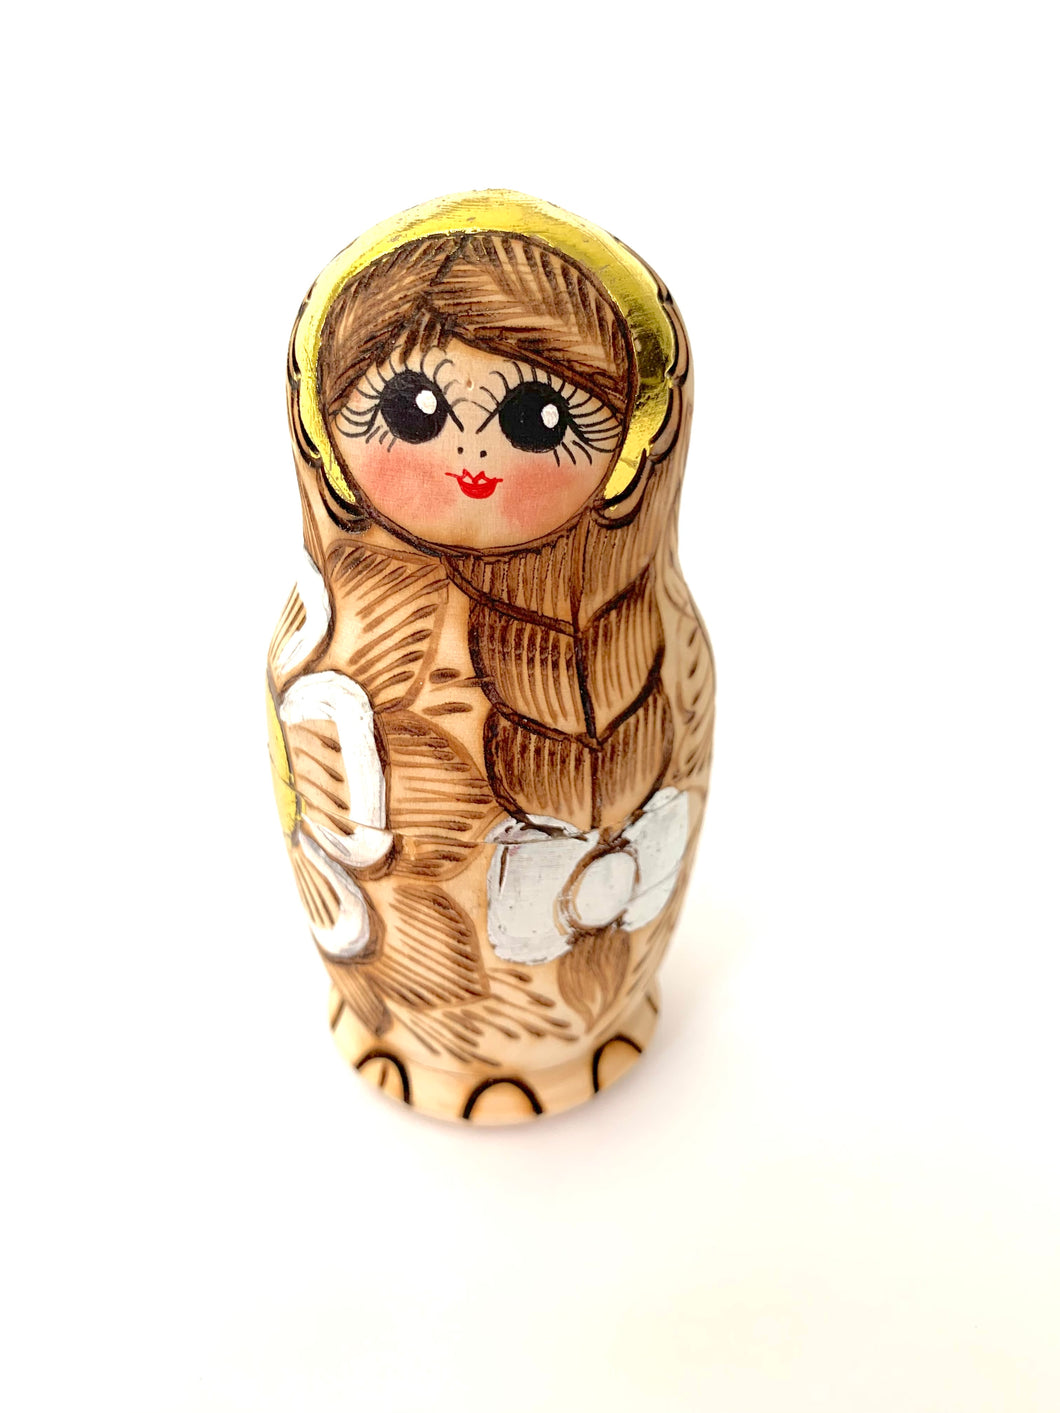 Wood Burned Matryoshka, Katarina, 5 pcs